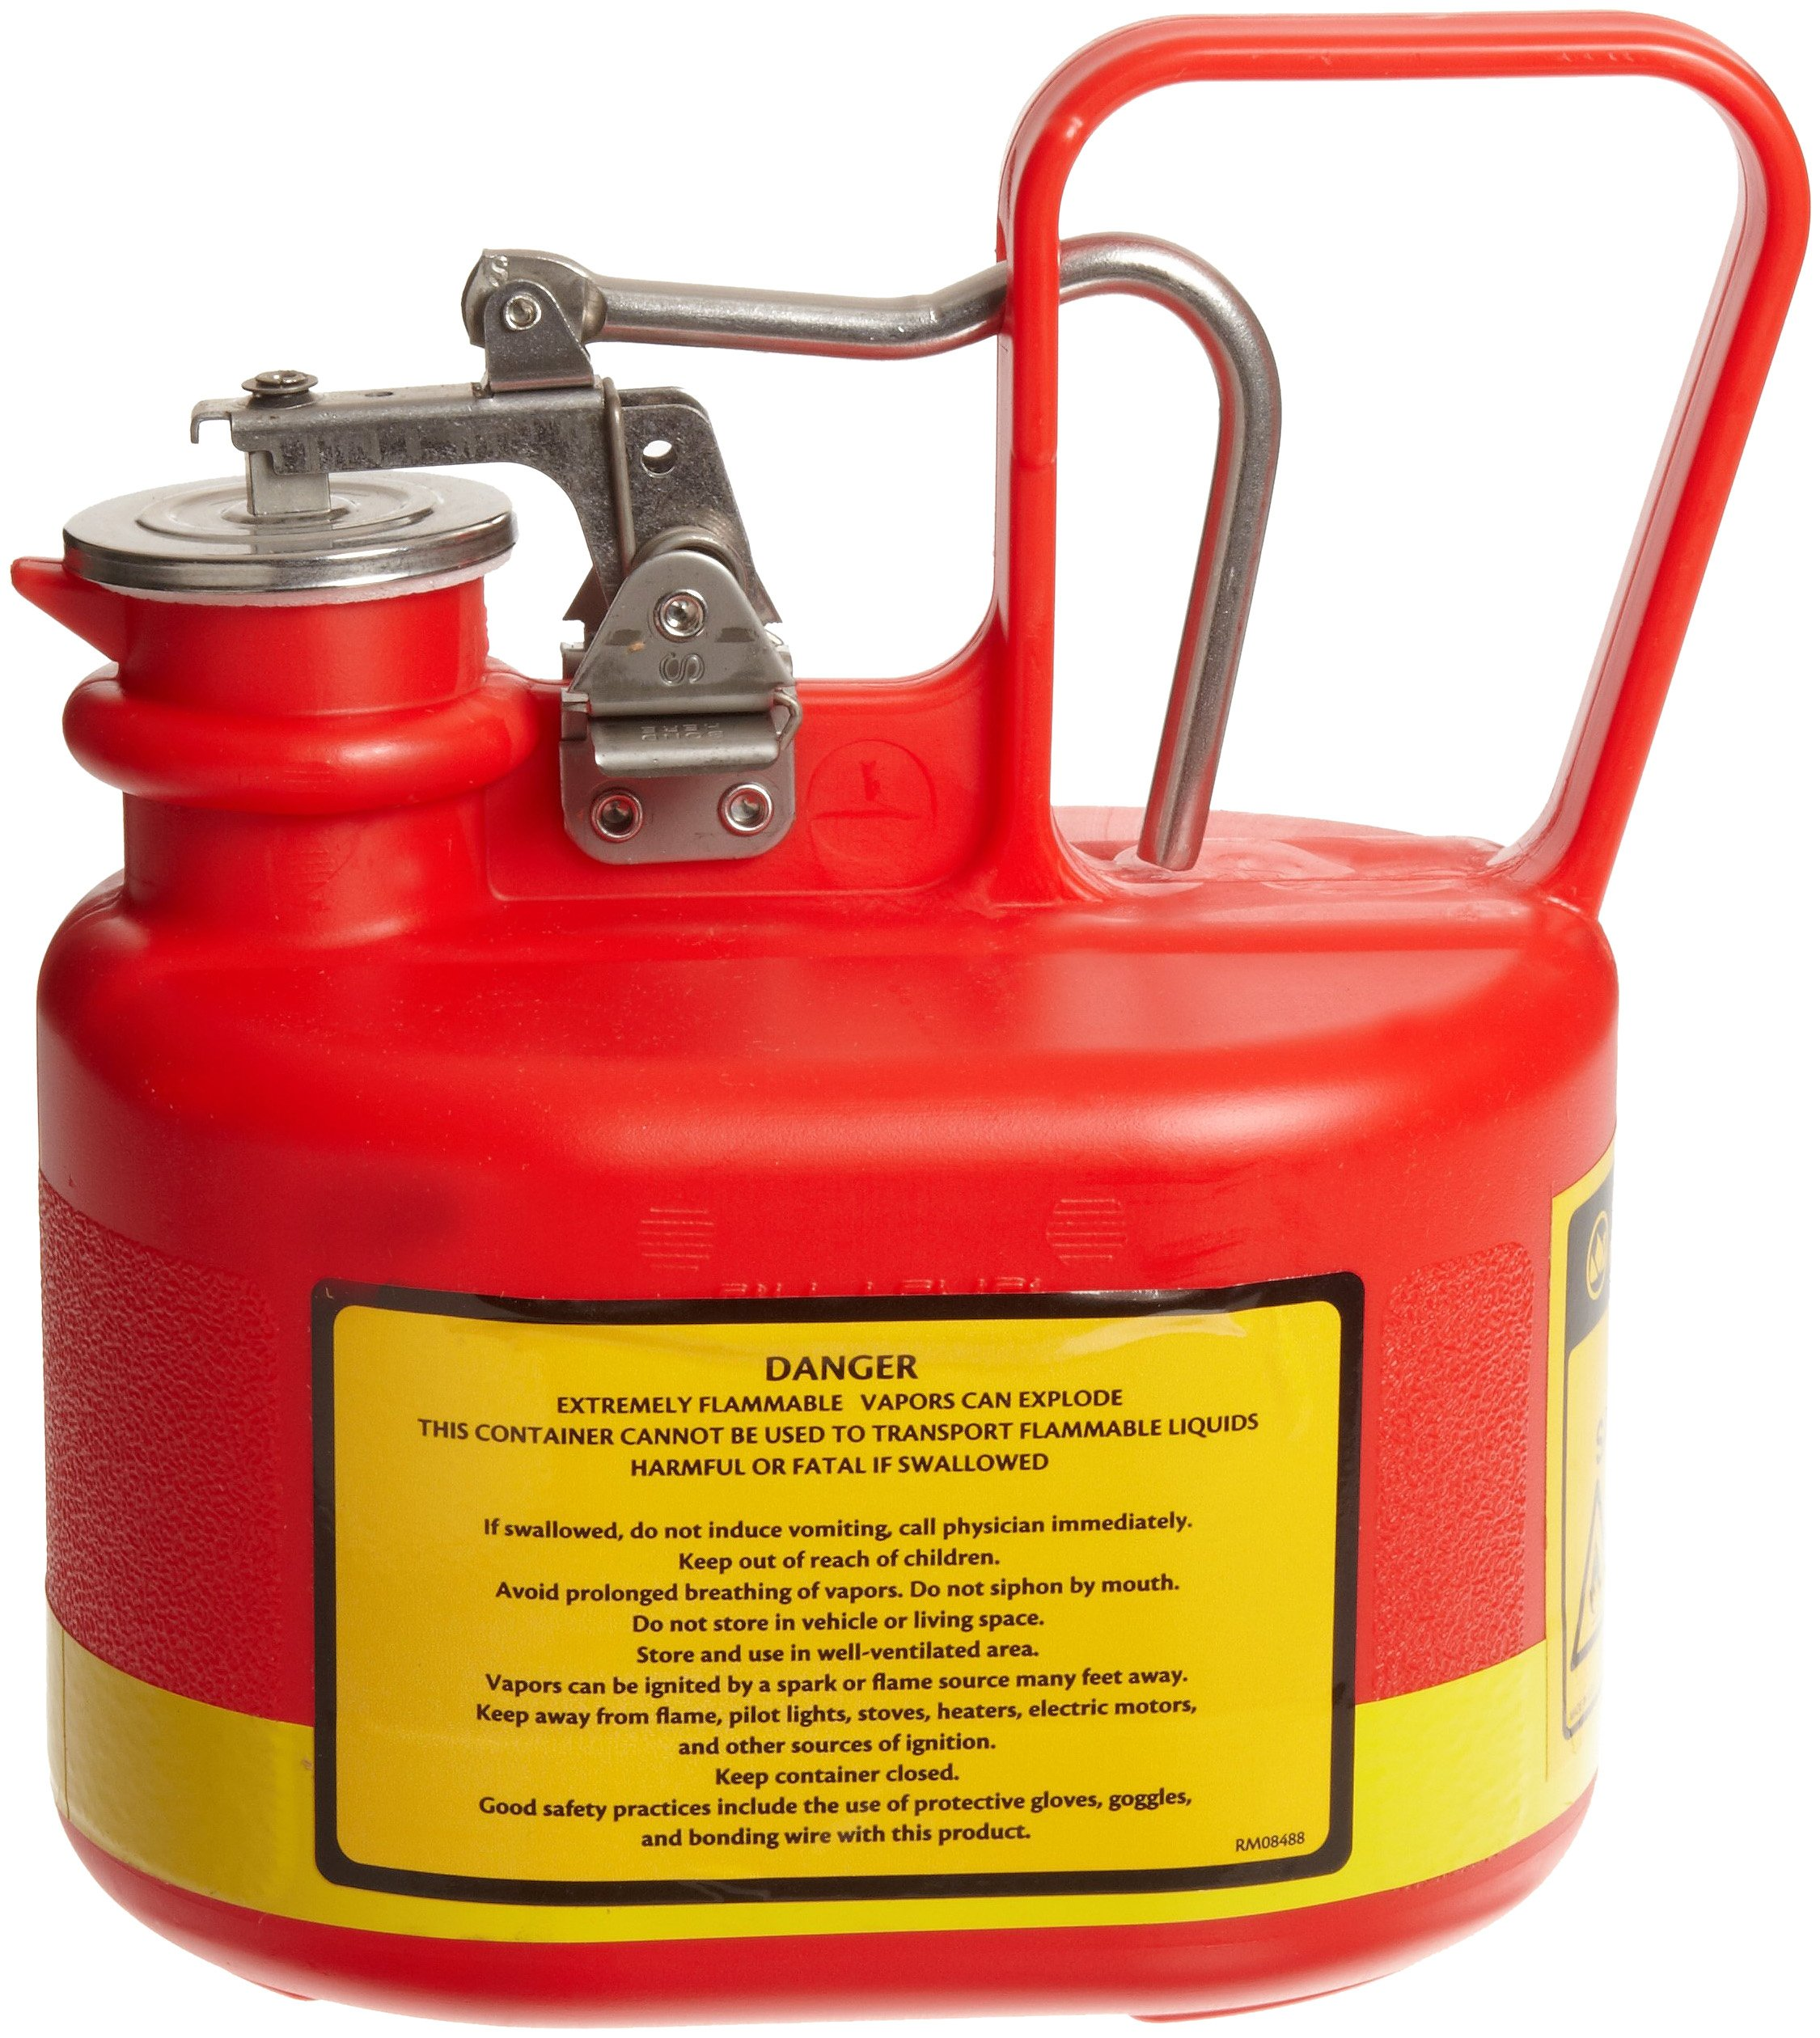 Justrite 14065 1/2 Gallon, 4 5/8'' x 7 5/8'' x 9.50'' Size Type I Red Oval Polyethylene Safety Can With Stainless Steel Hard